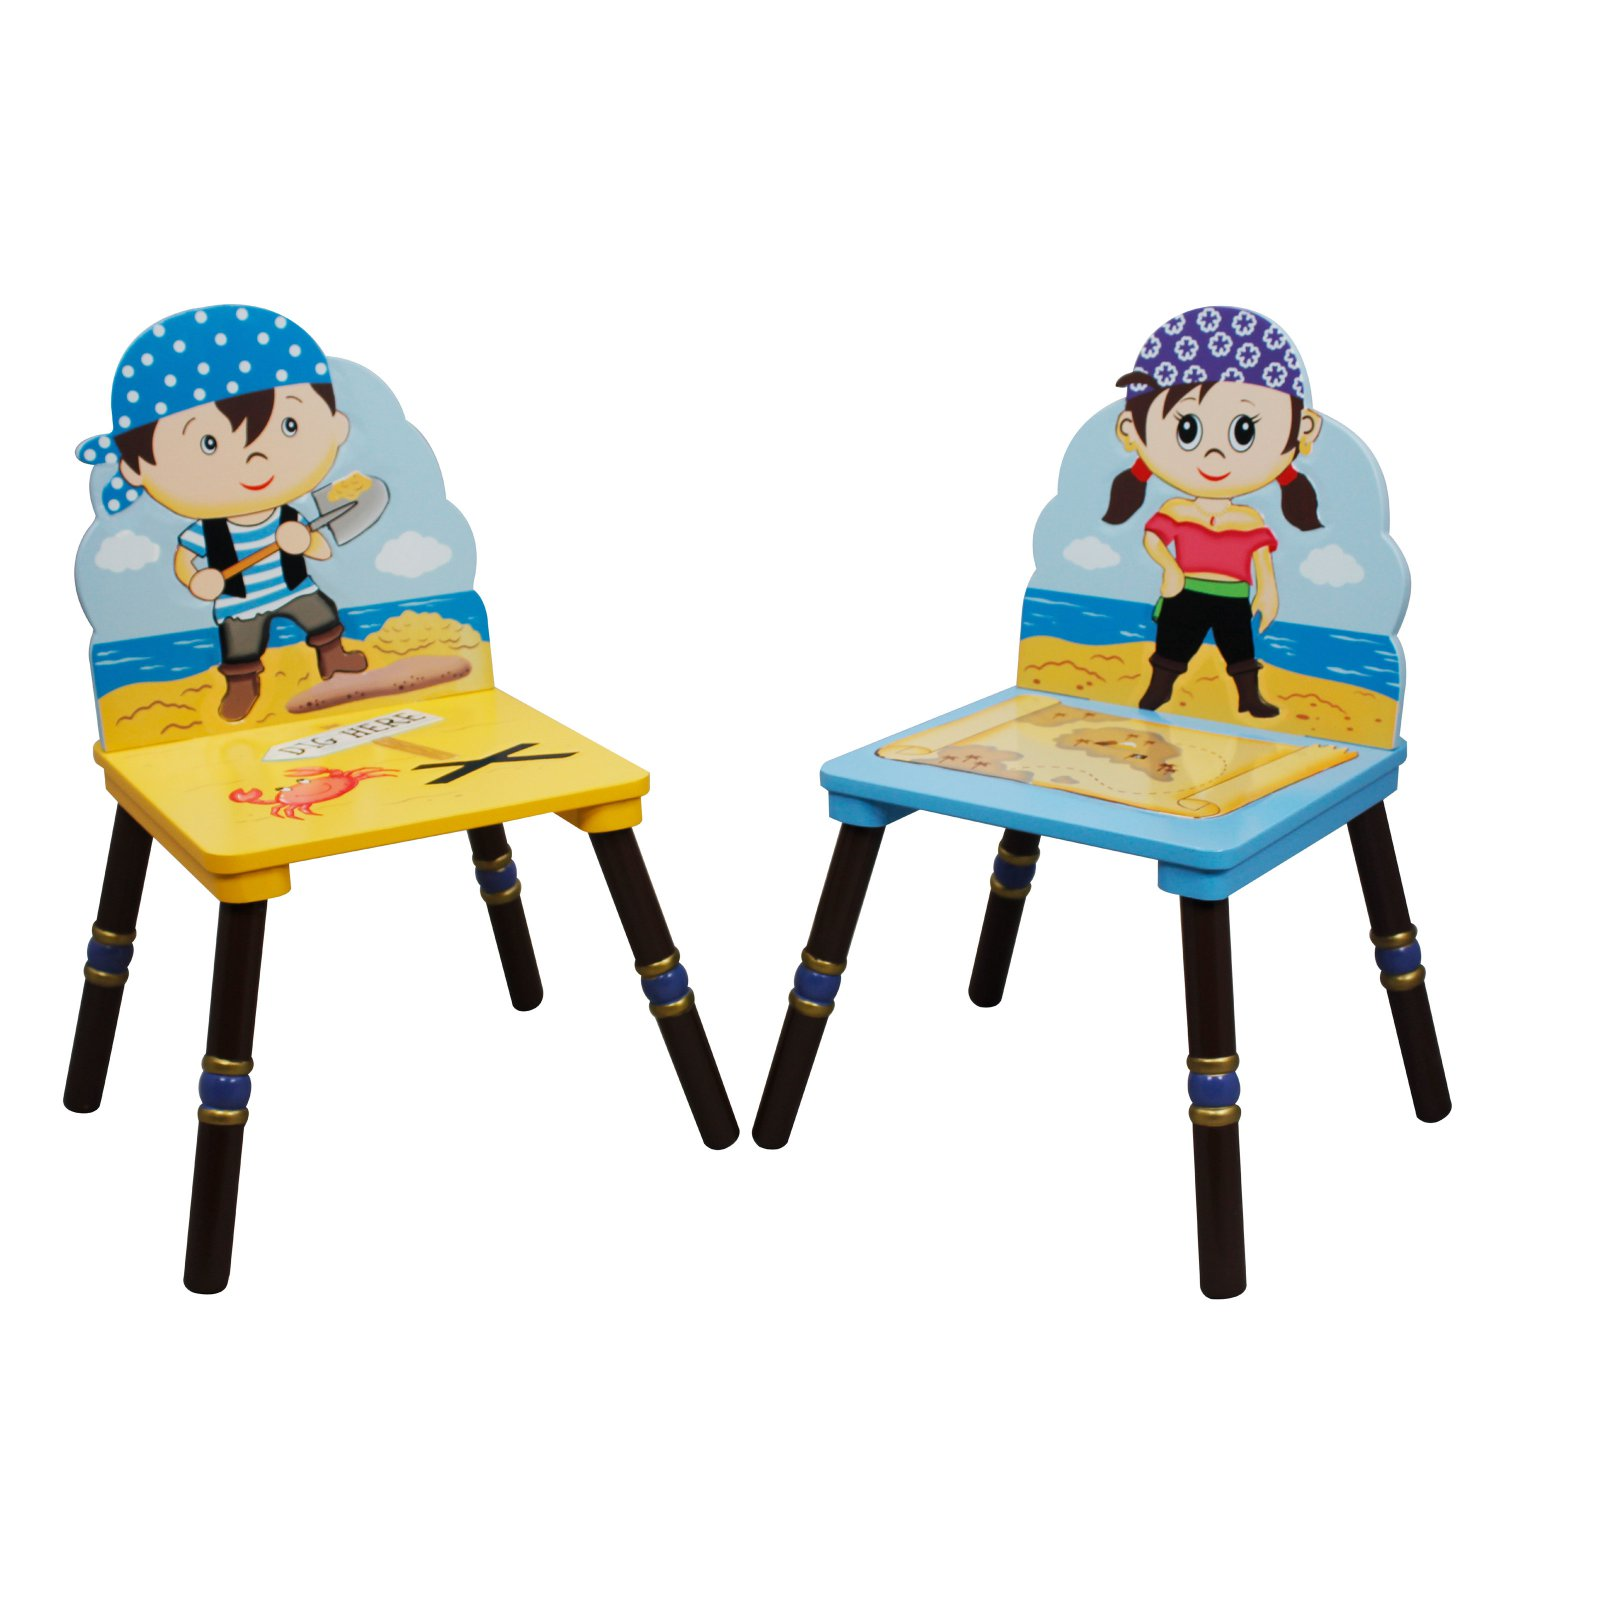 Fantasy Fields Pirates Island Set of 2 Chairs, B